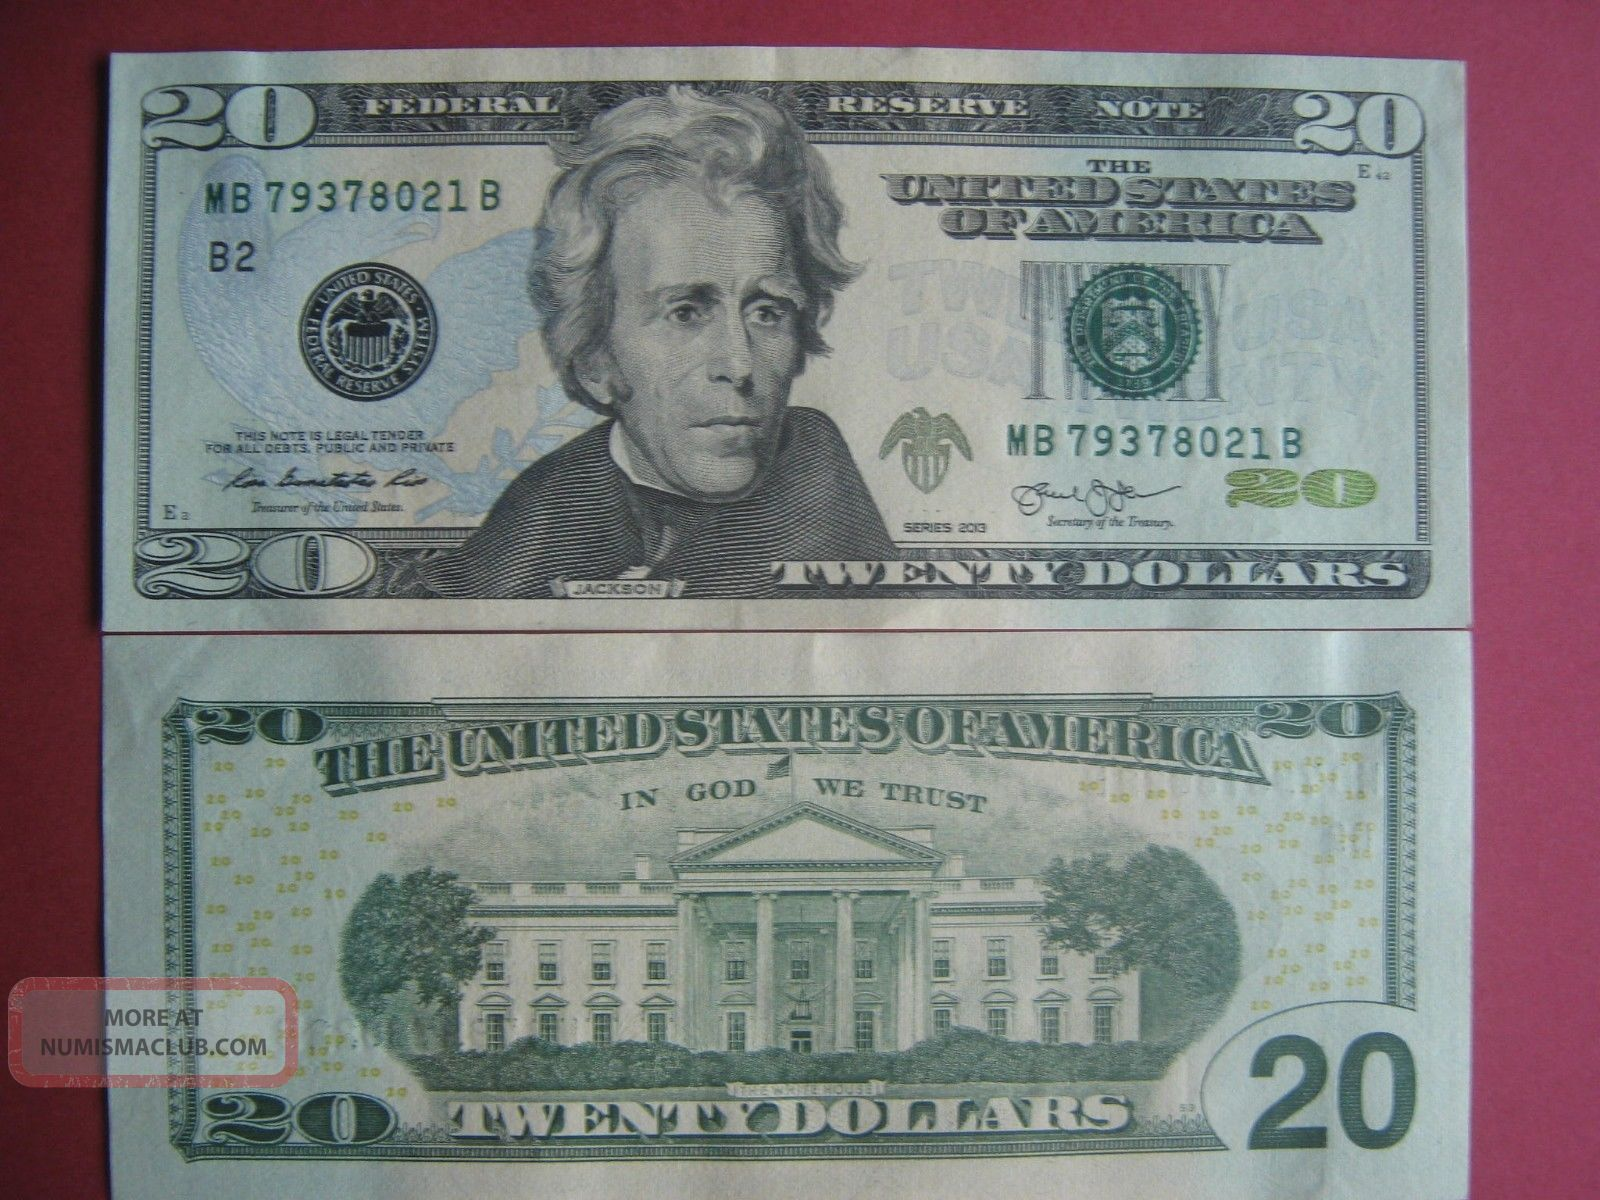 Picture of a real 20 dollar bill